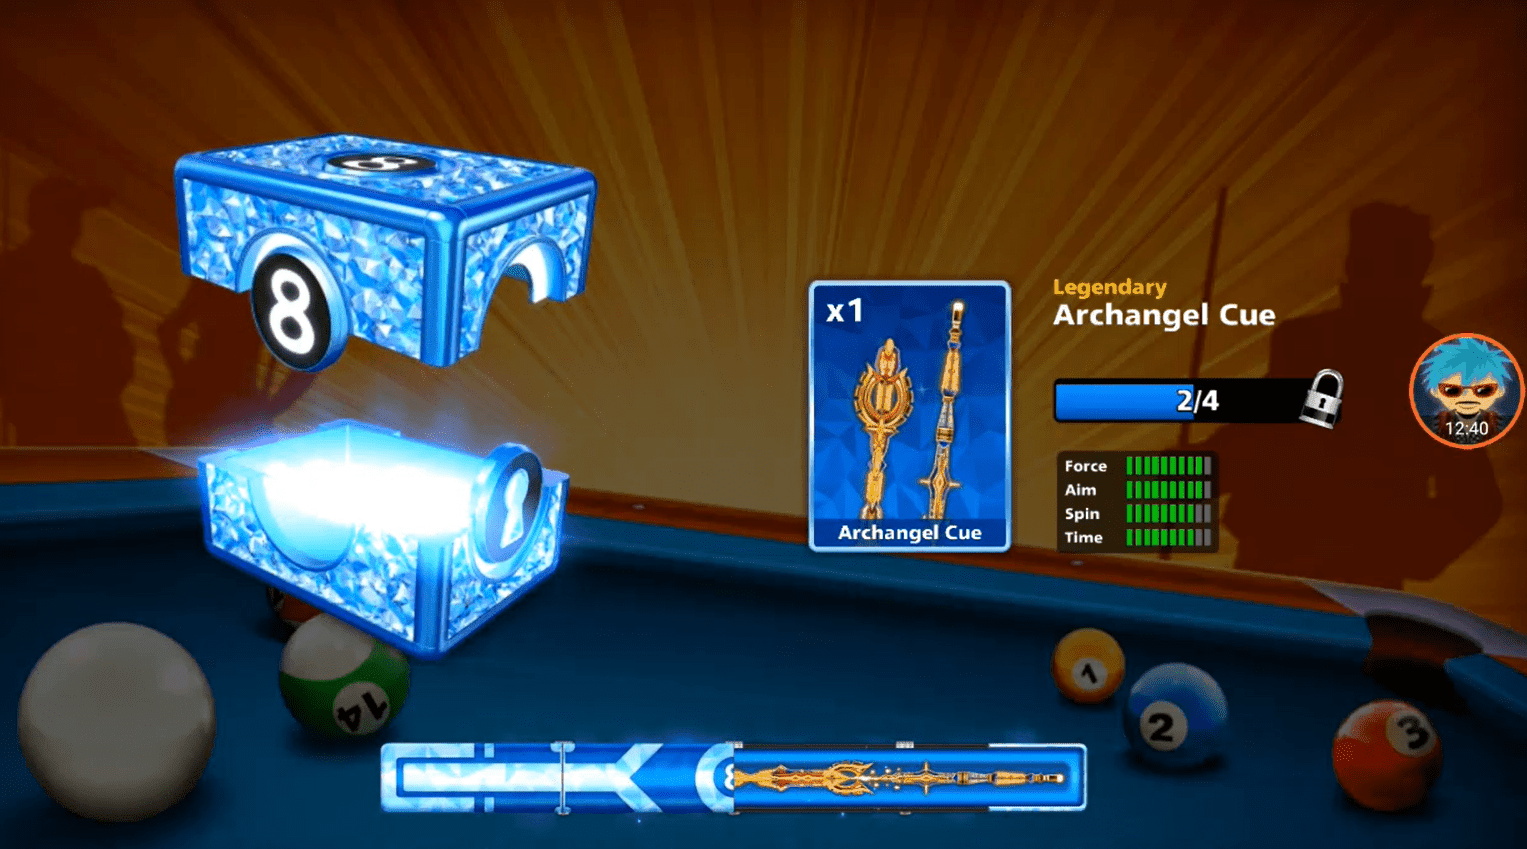 Legendary 8 ball pool cue